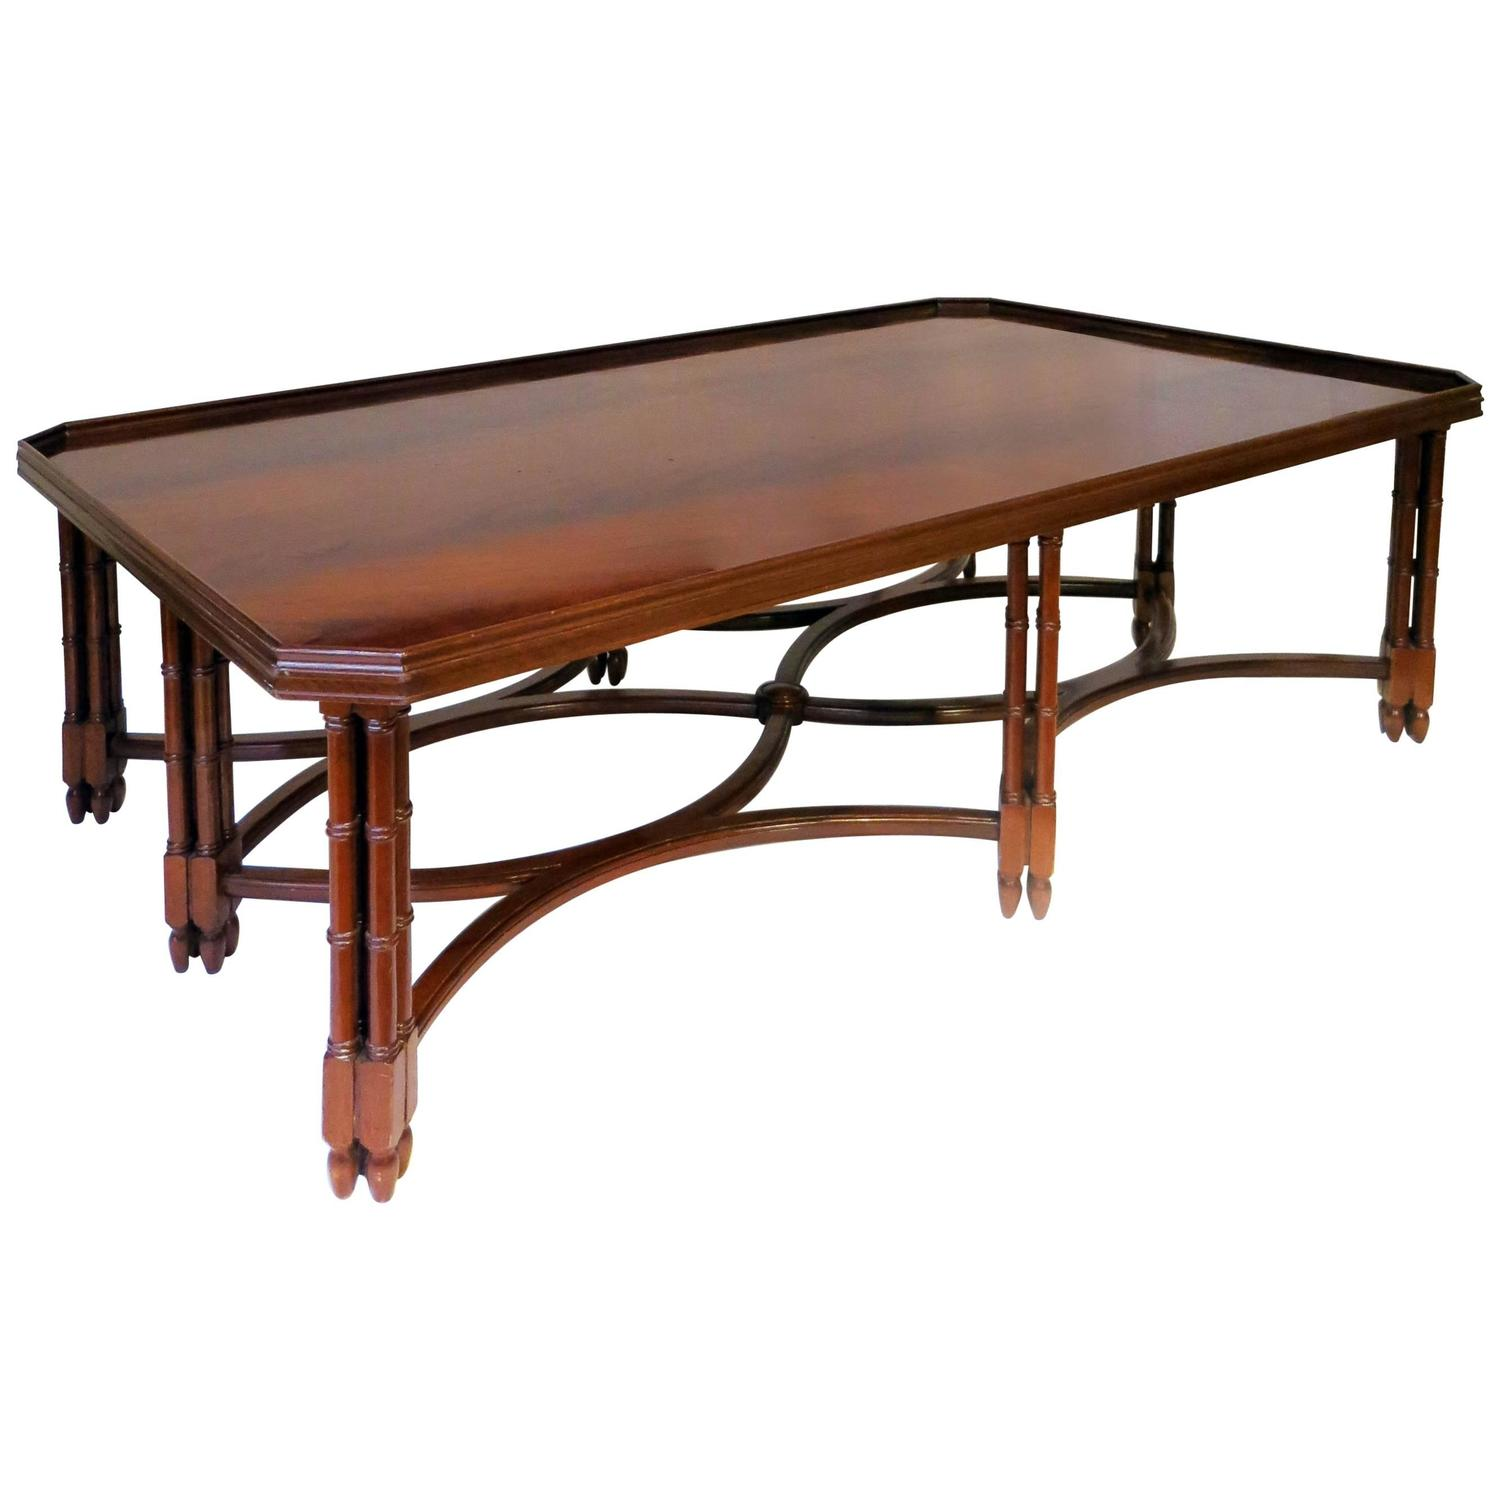 Mahogany Coffee Table by Madeleine Castaing at 1stdibs